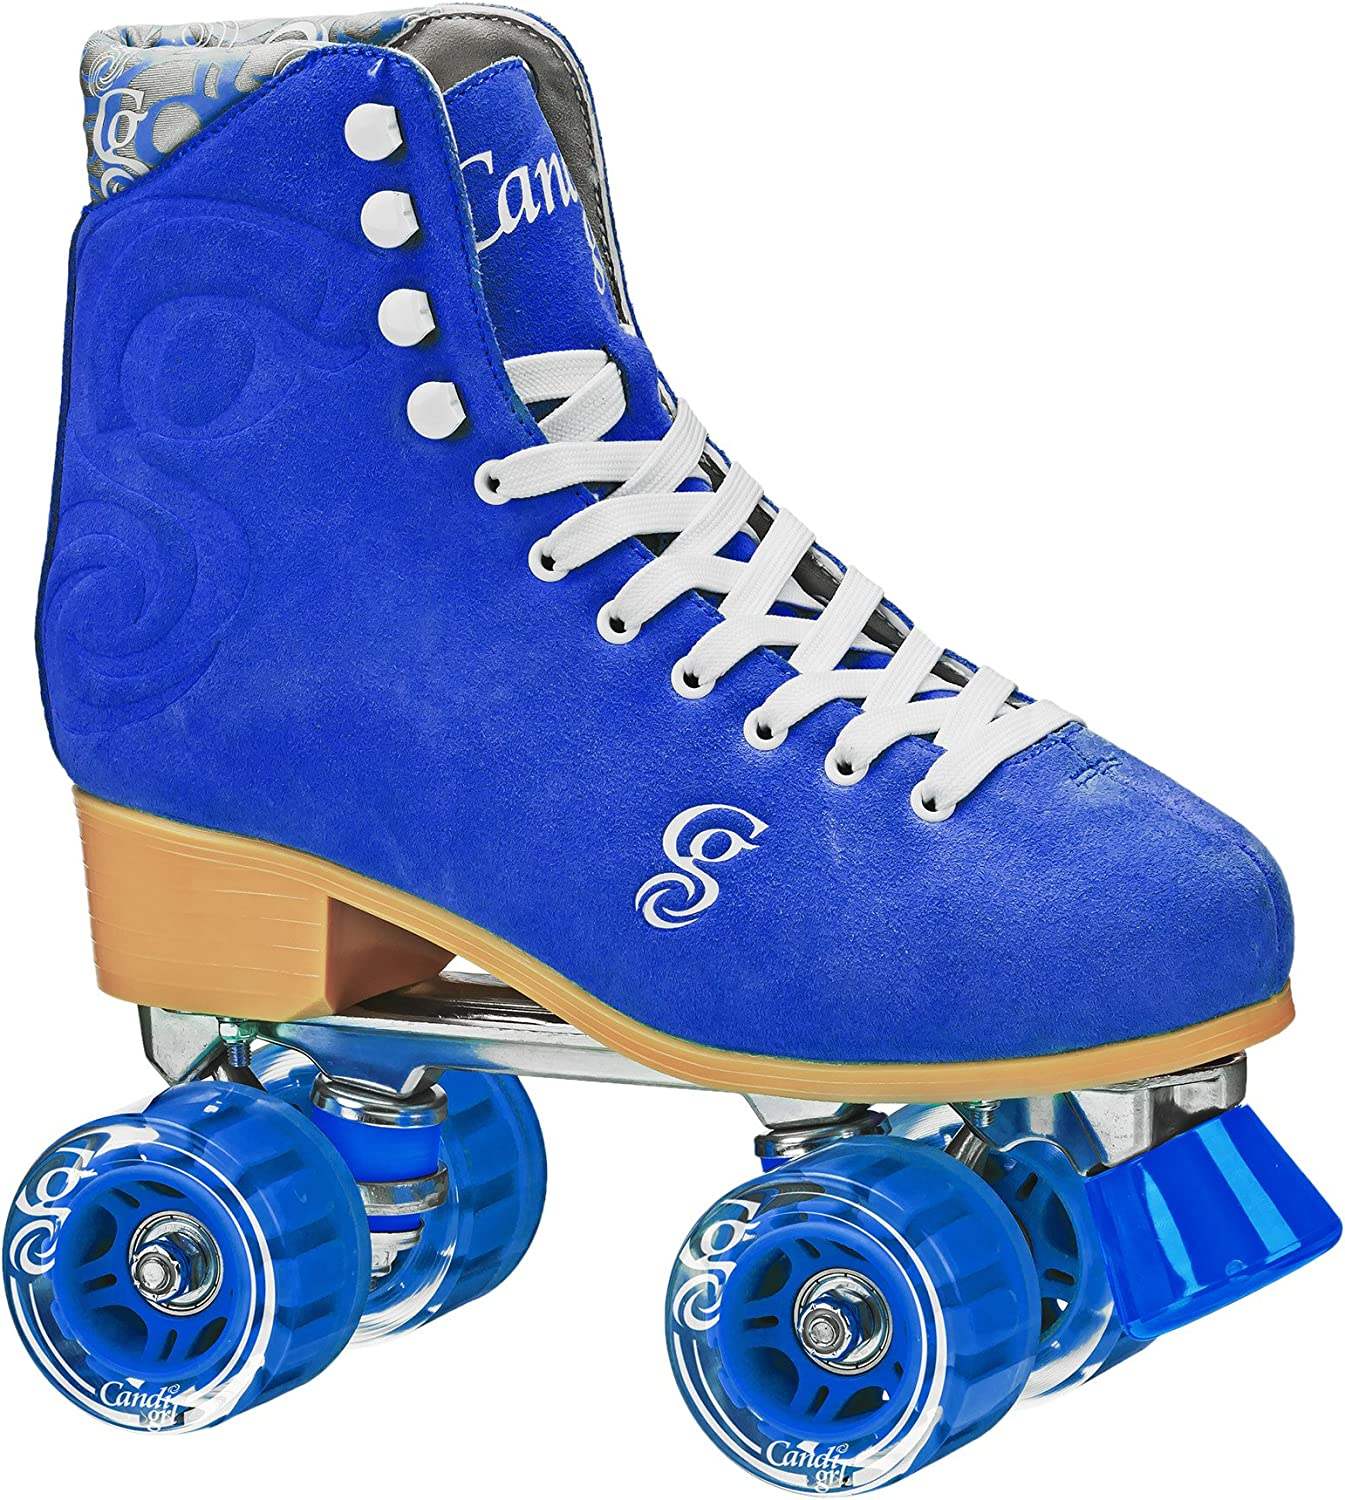 Roller Derby Candi Carlin Artistic Skates Outdoor Recreation Product